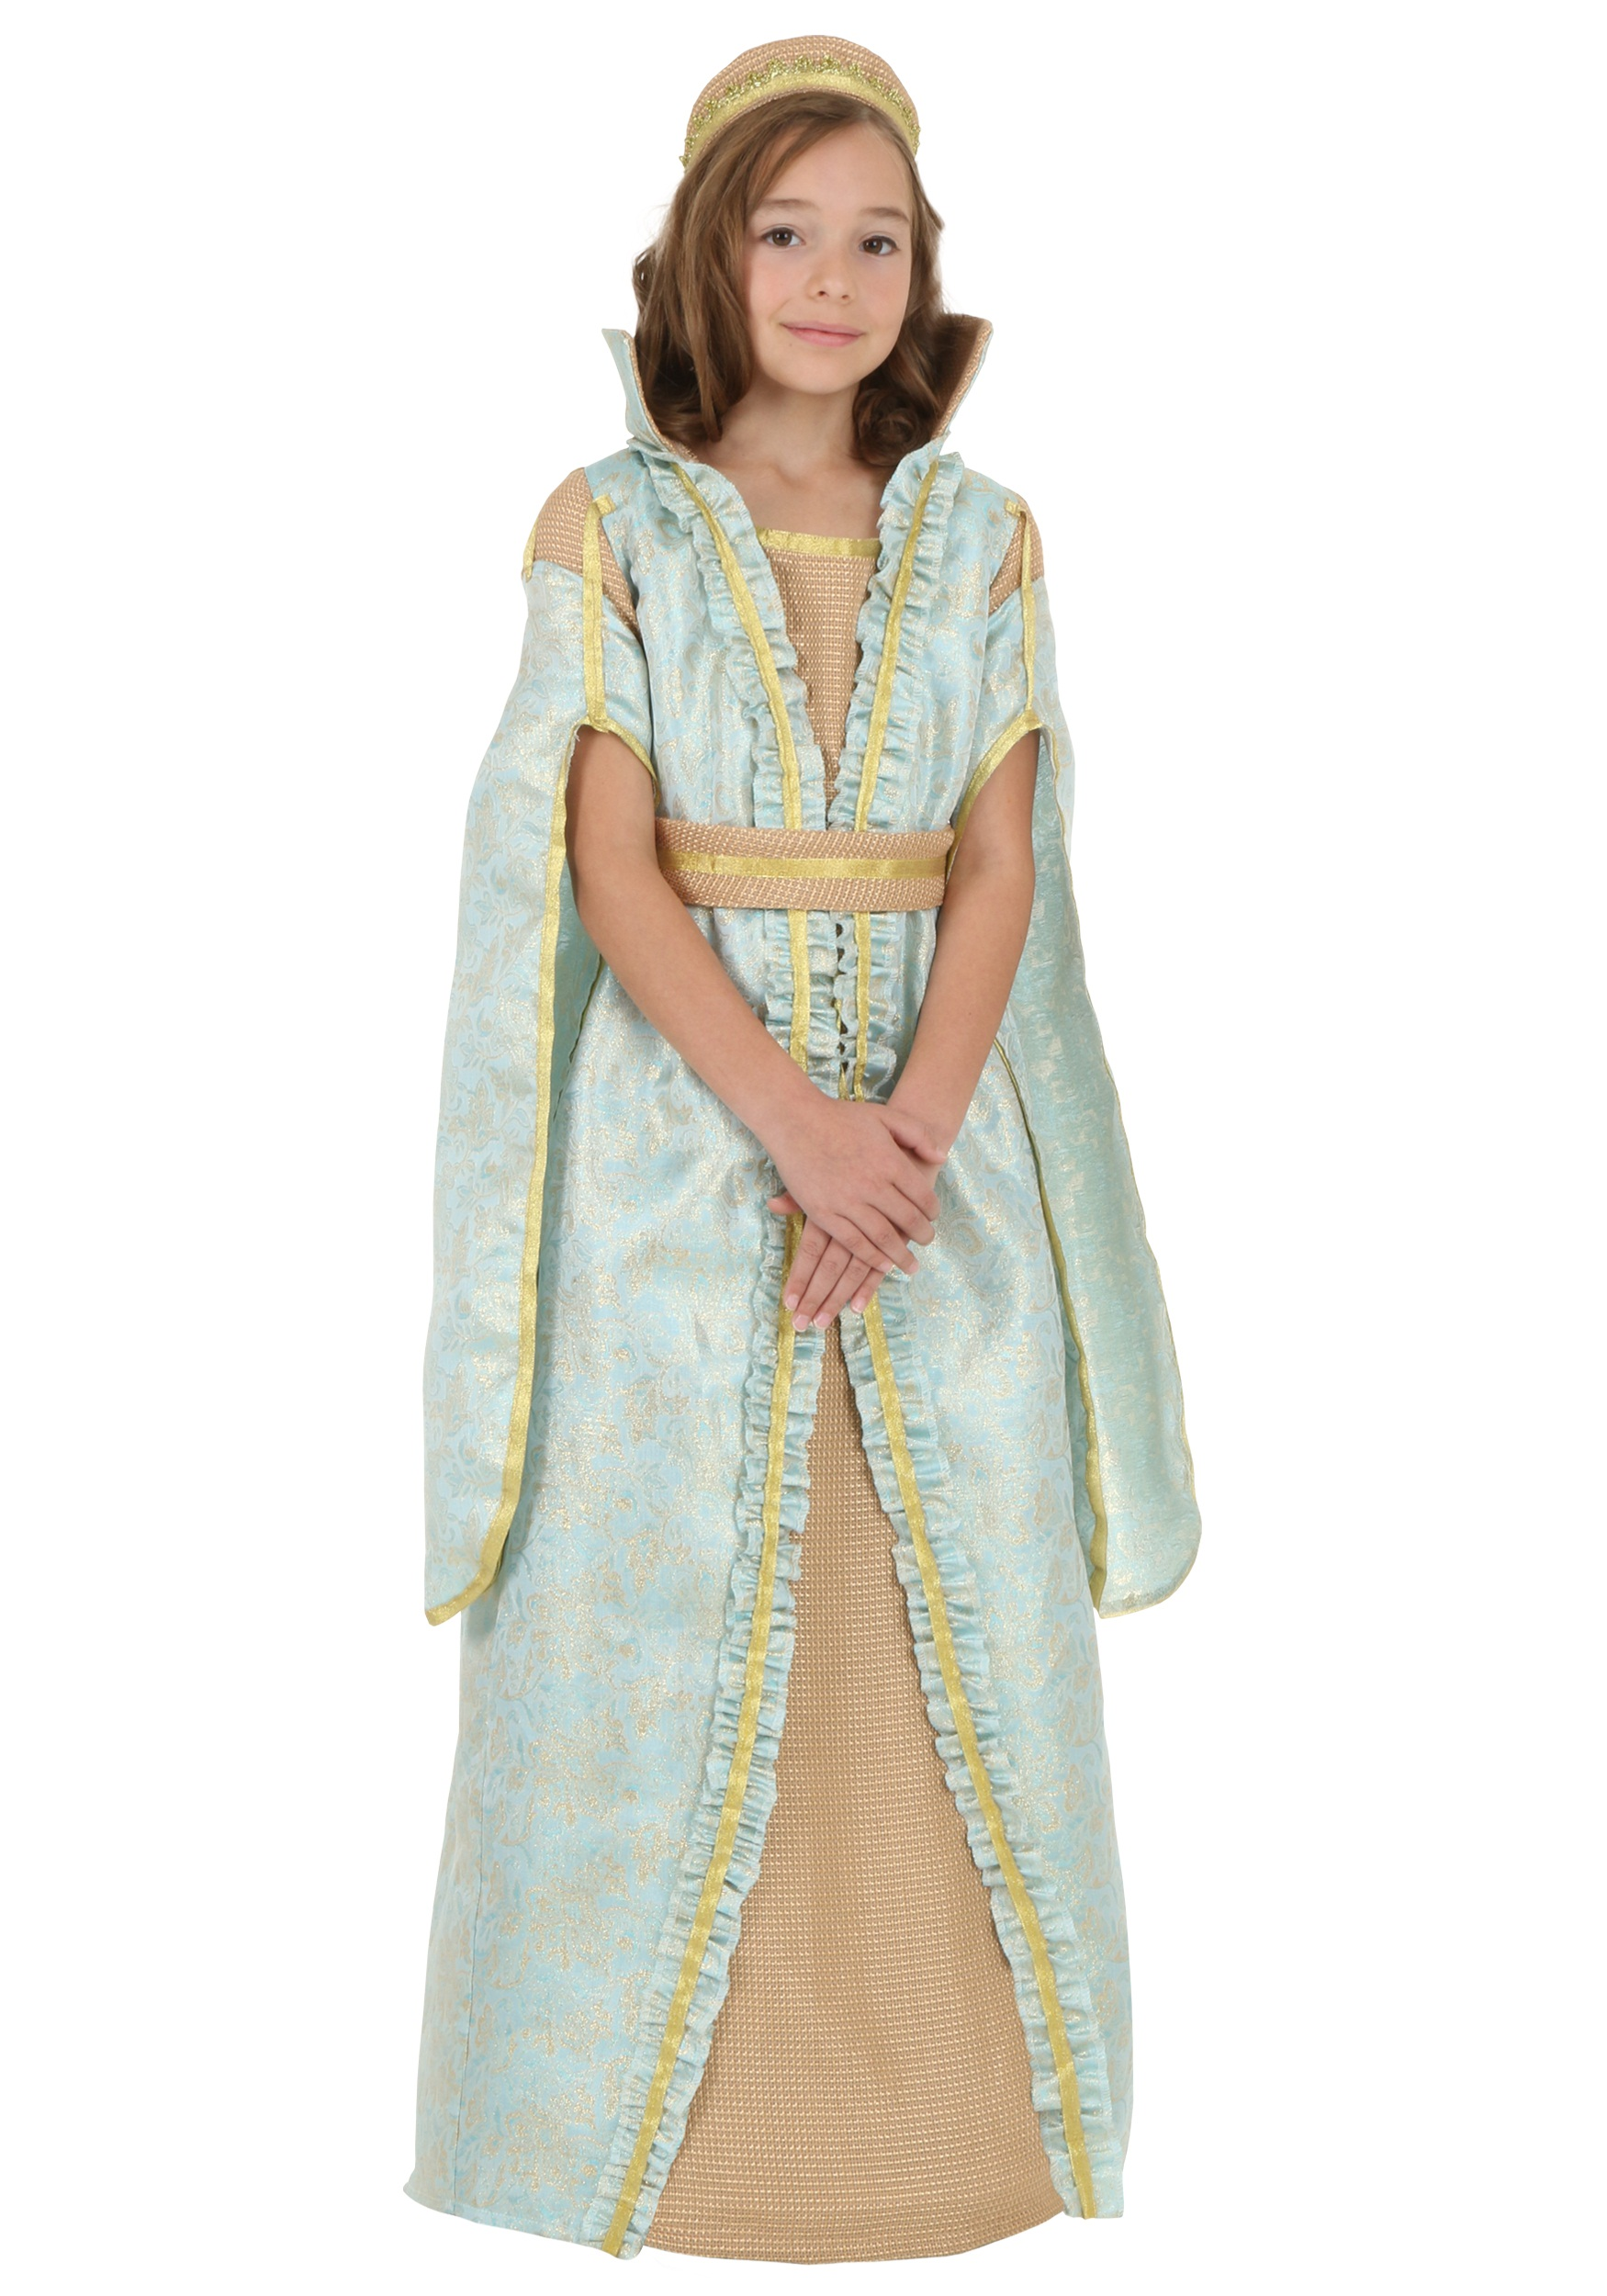 Child Royal Renaissance Costume